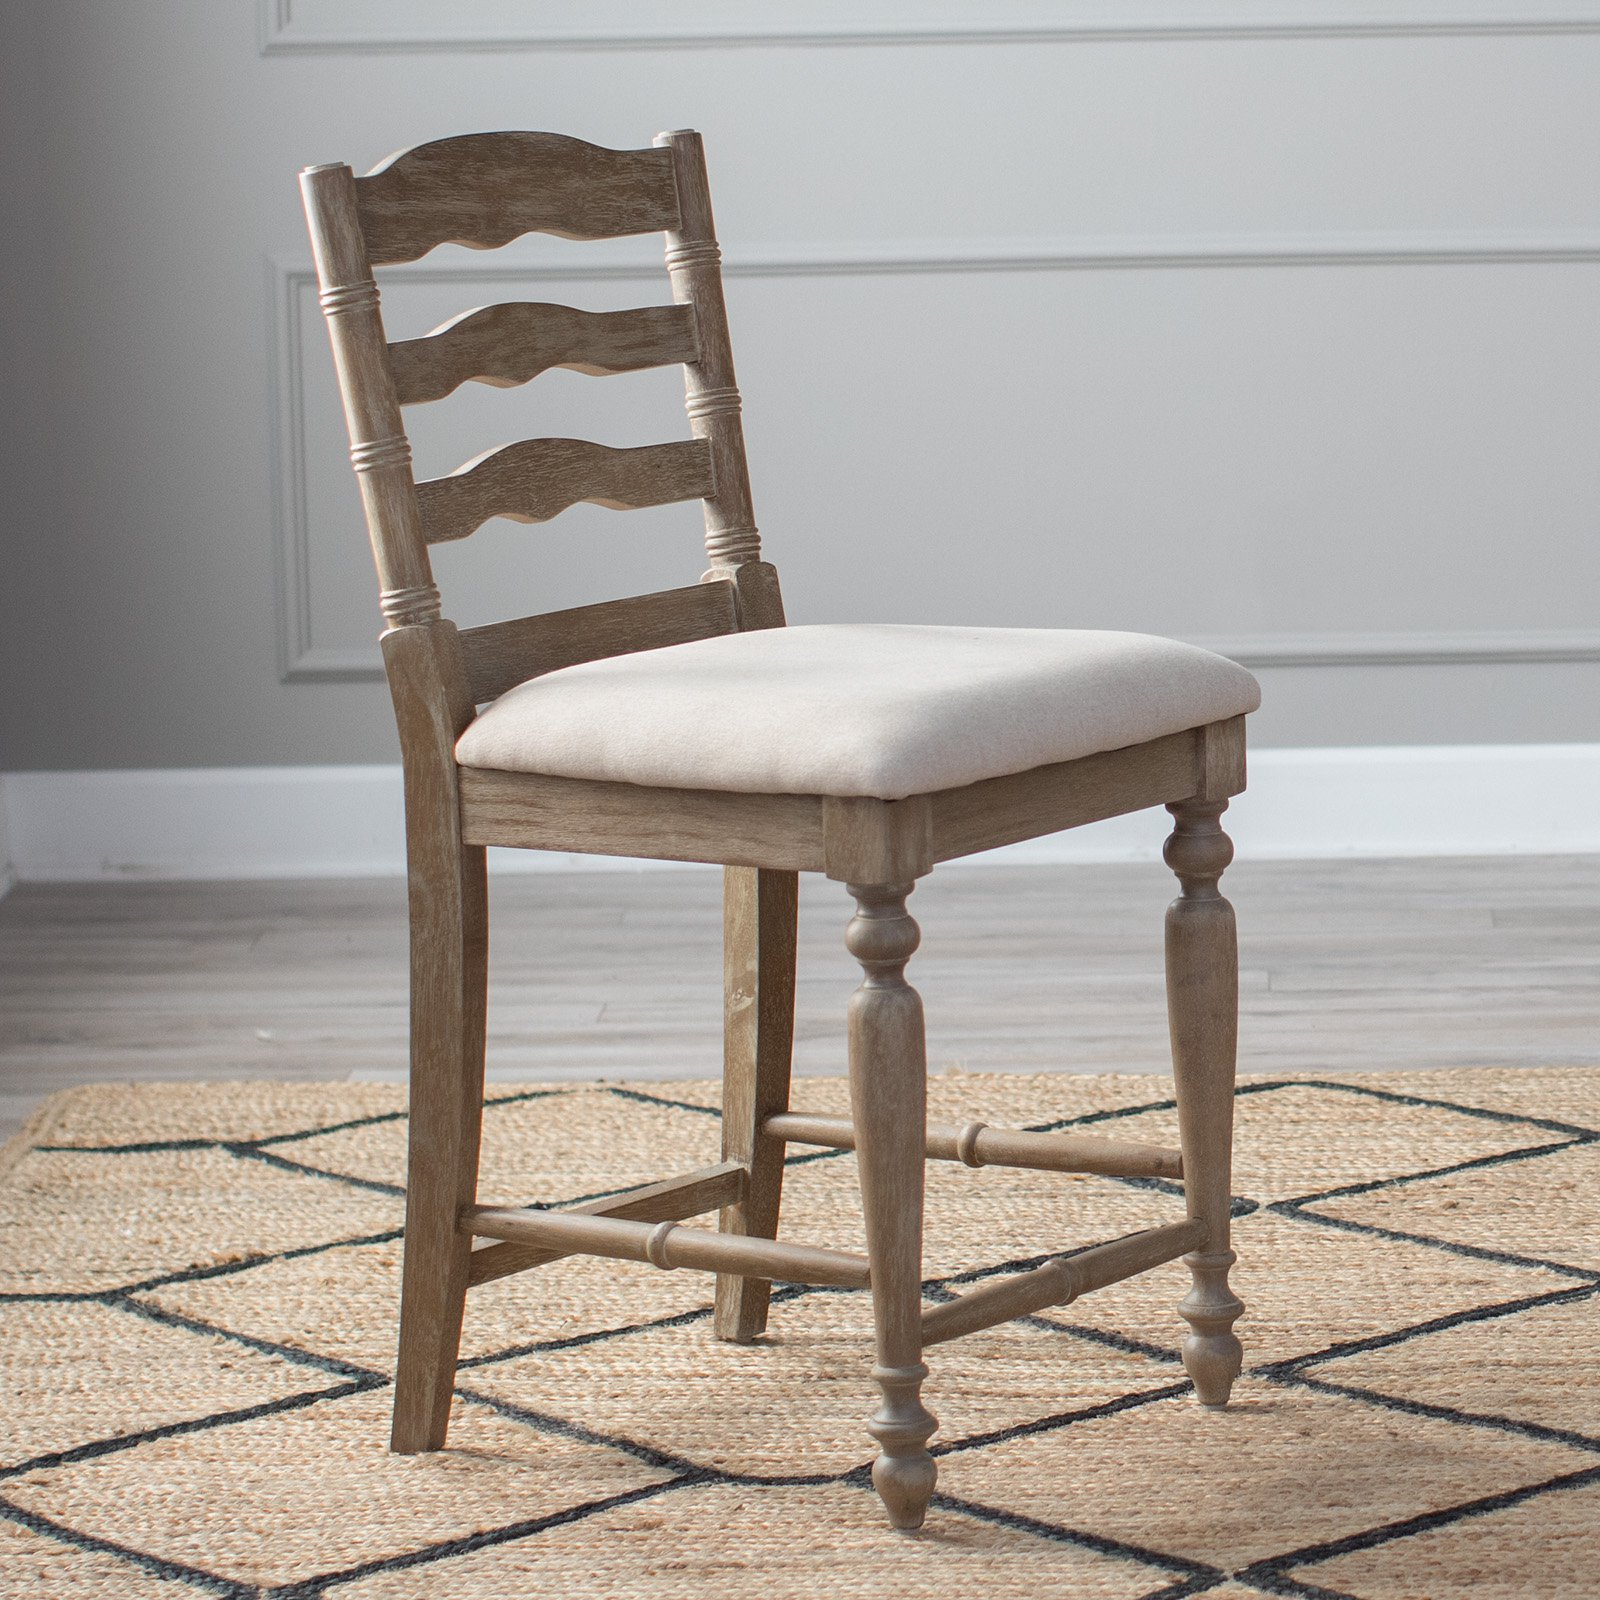 Belham Living Delaney Counter Stool Gray by Linon Home Decor Products Inc